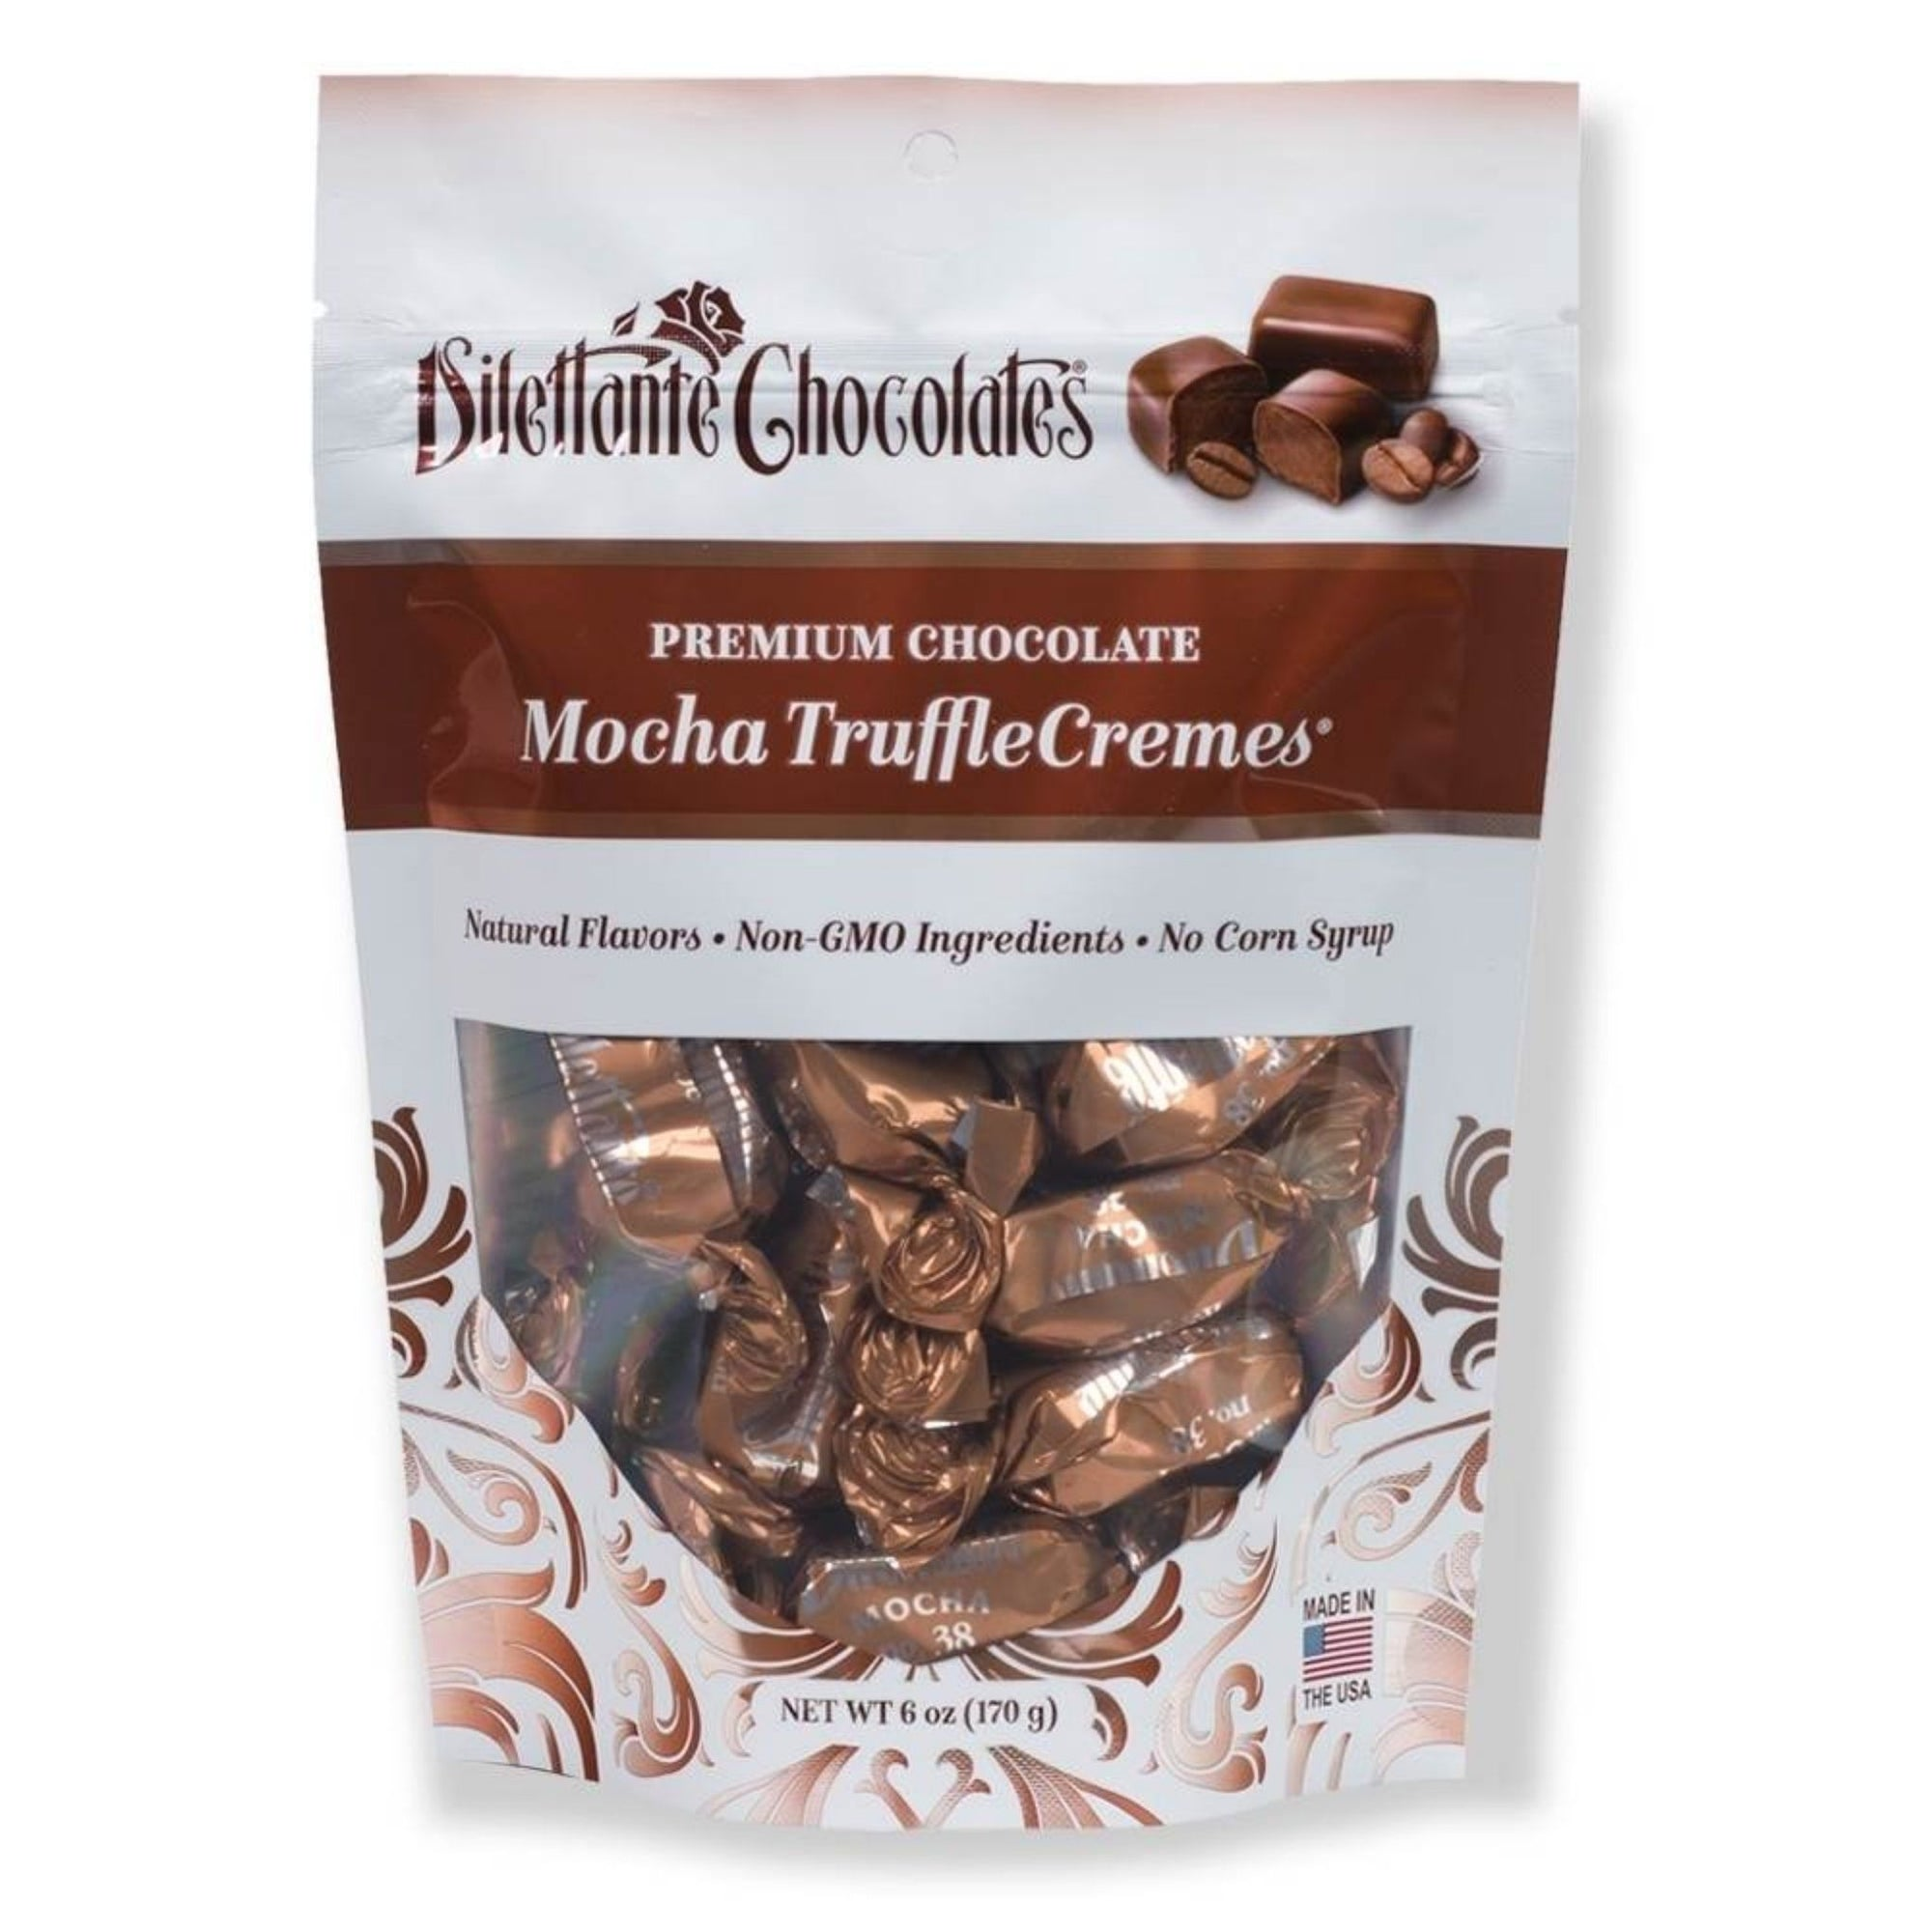 Dilettante Chocolates Mocha TruffleCremes Made with Natural Flavors Non-GMO Ingredients and No Corn Syrup